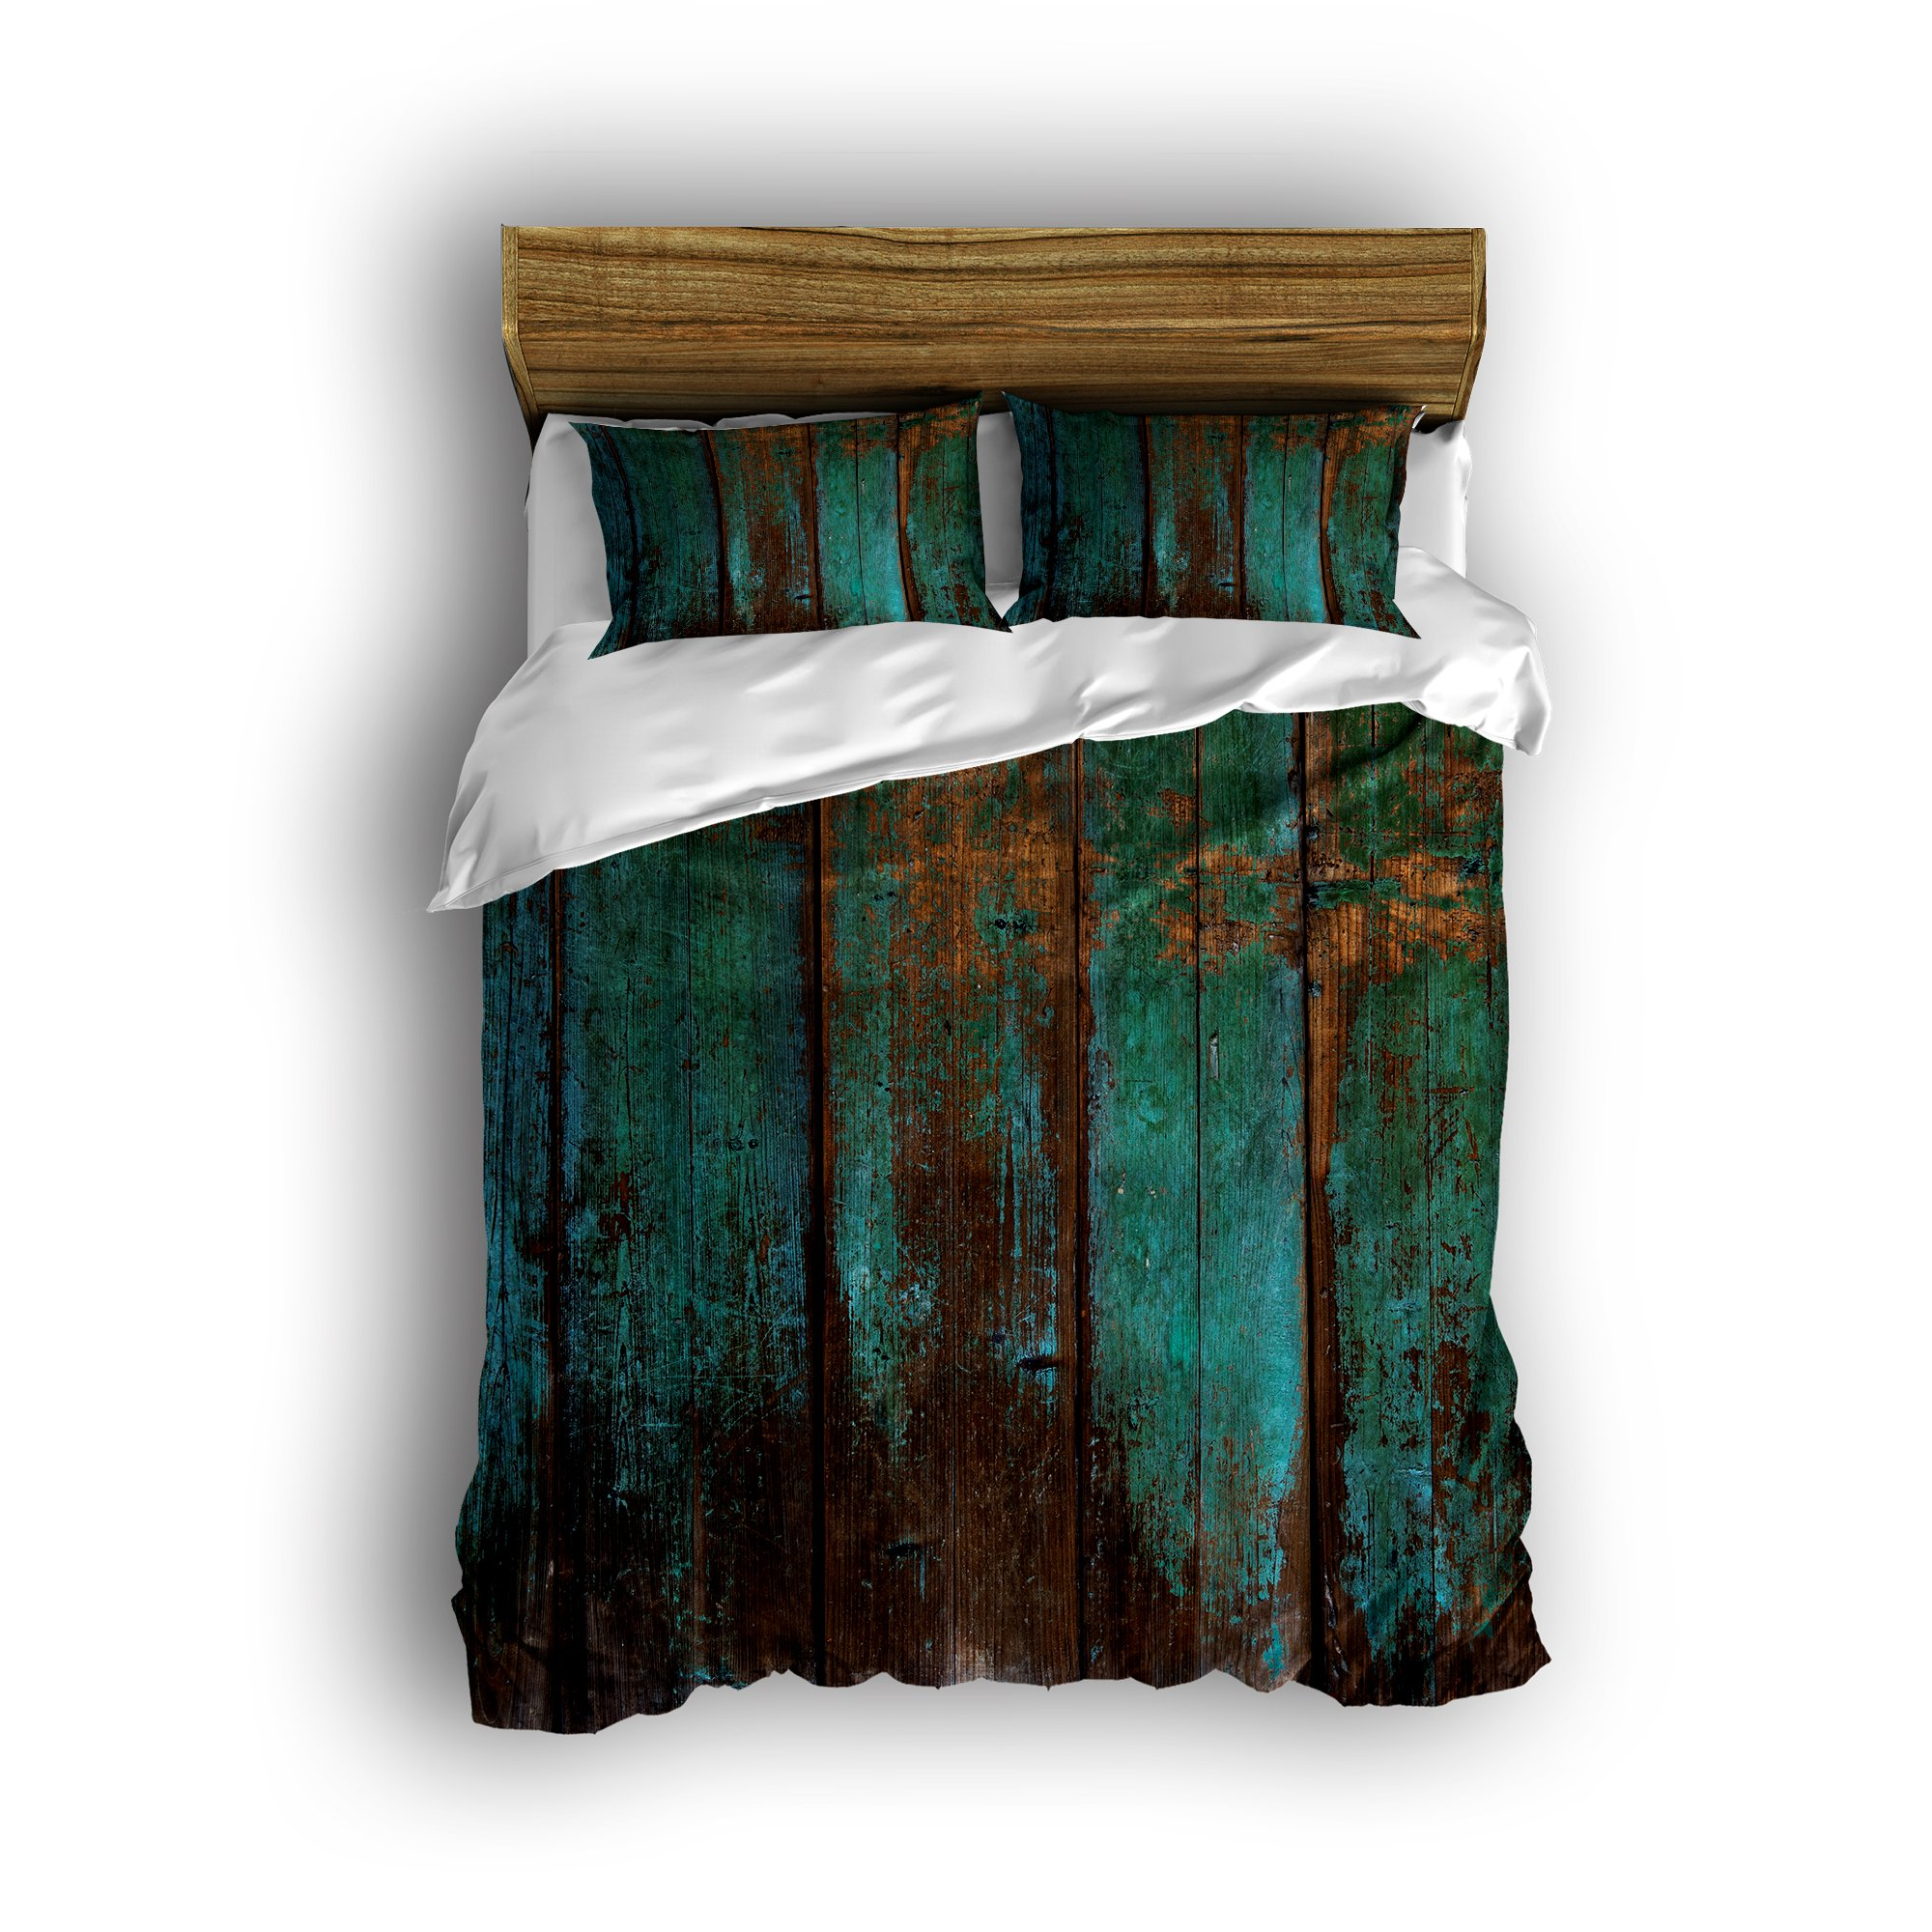 CHARM HOME Rustic Distressed Teal Green Barn Wood Design Super Soft 4pc?Duvet Cover Set, Ultra Soft and Easy Care, Fade Resistant